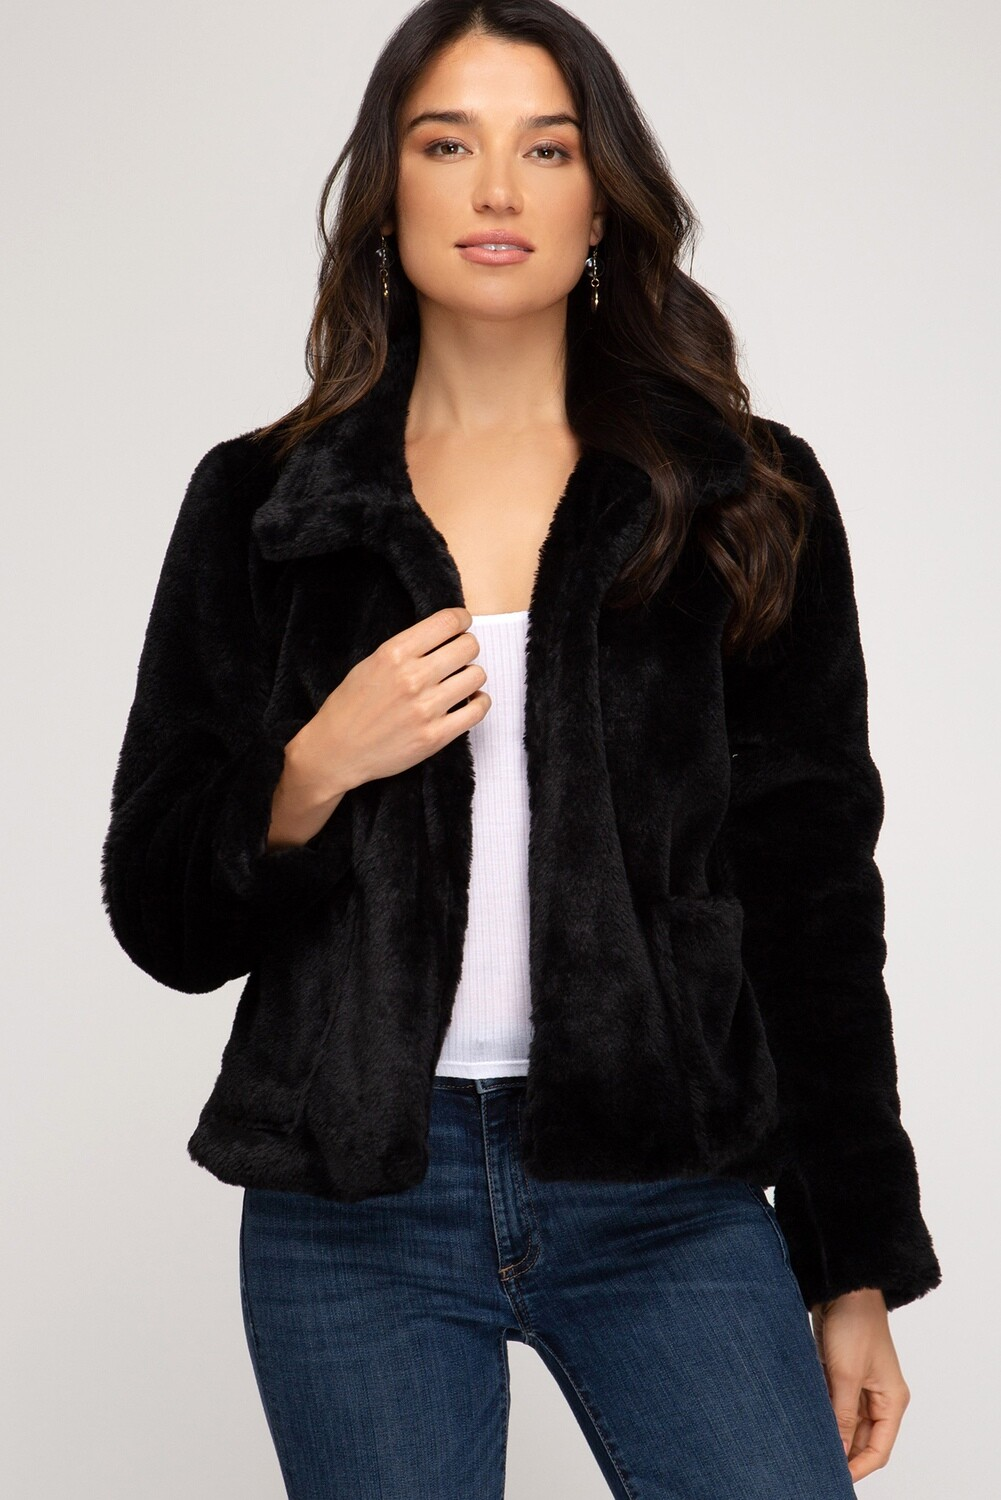 Faux Fur w/pockets!   Only 1 M/L & 1 S/M Left!!